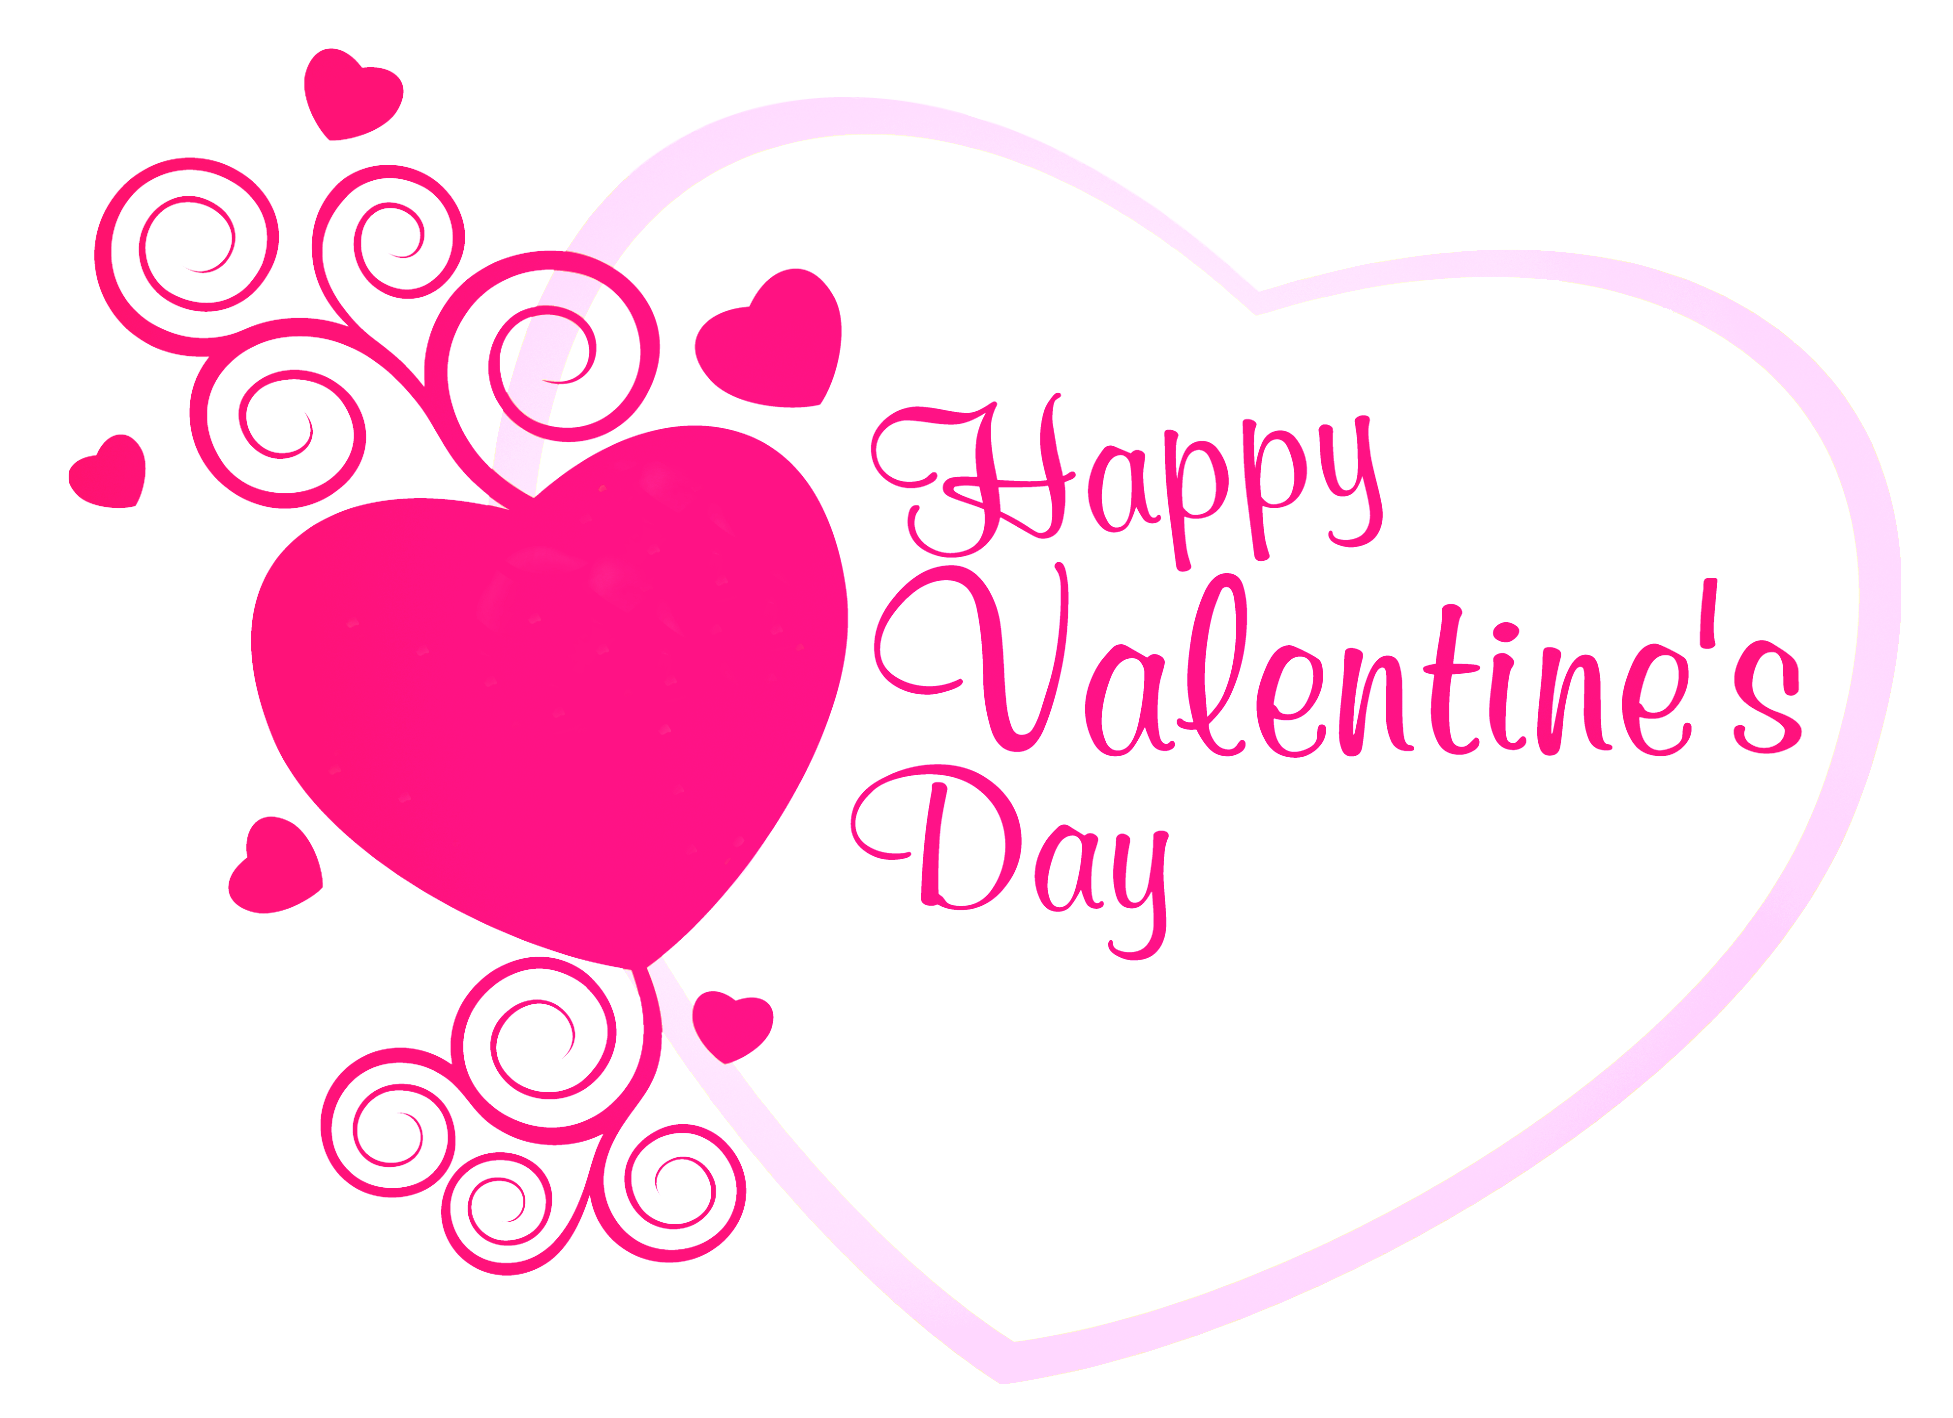 Happy valentines day heart clipart svg royalty free library Happy Valentines Day Heart Clipart | Letters Format svg royalty free library